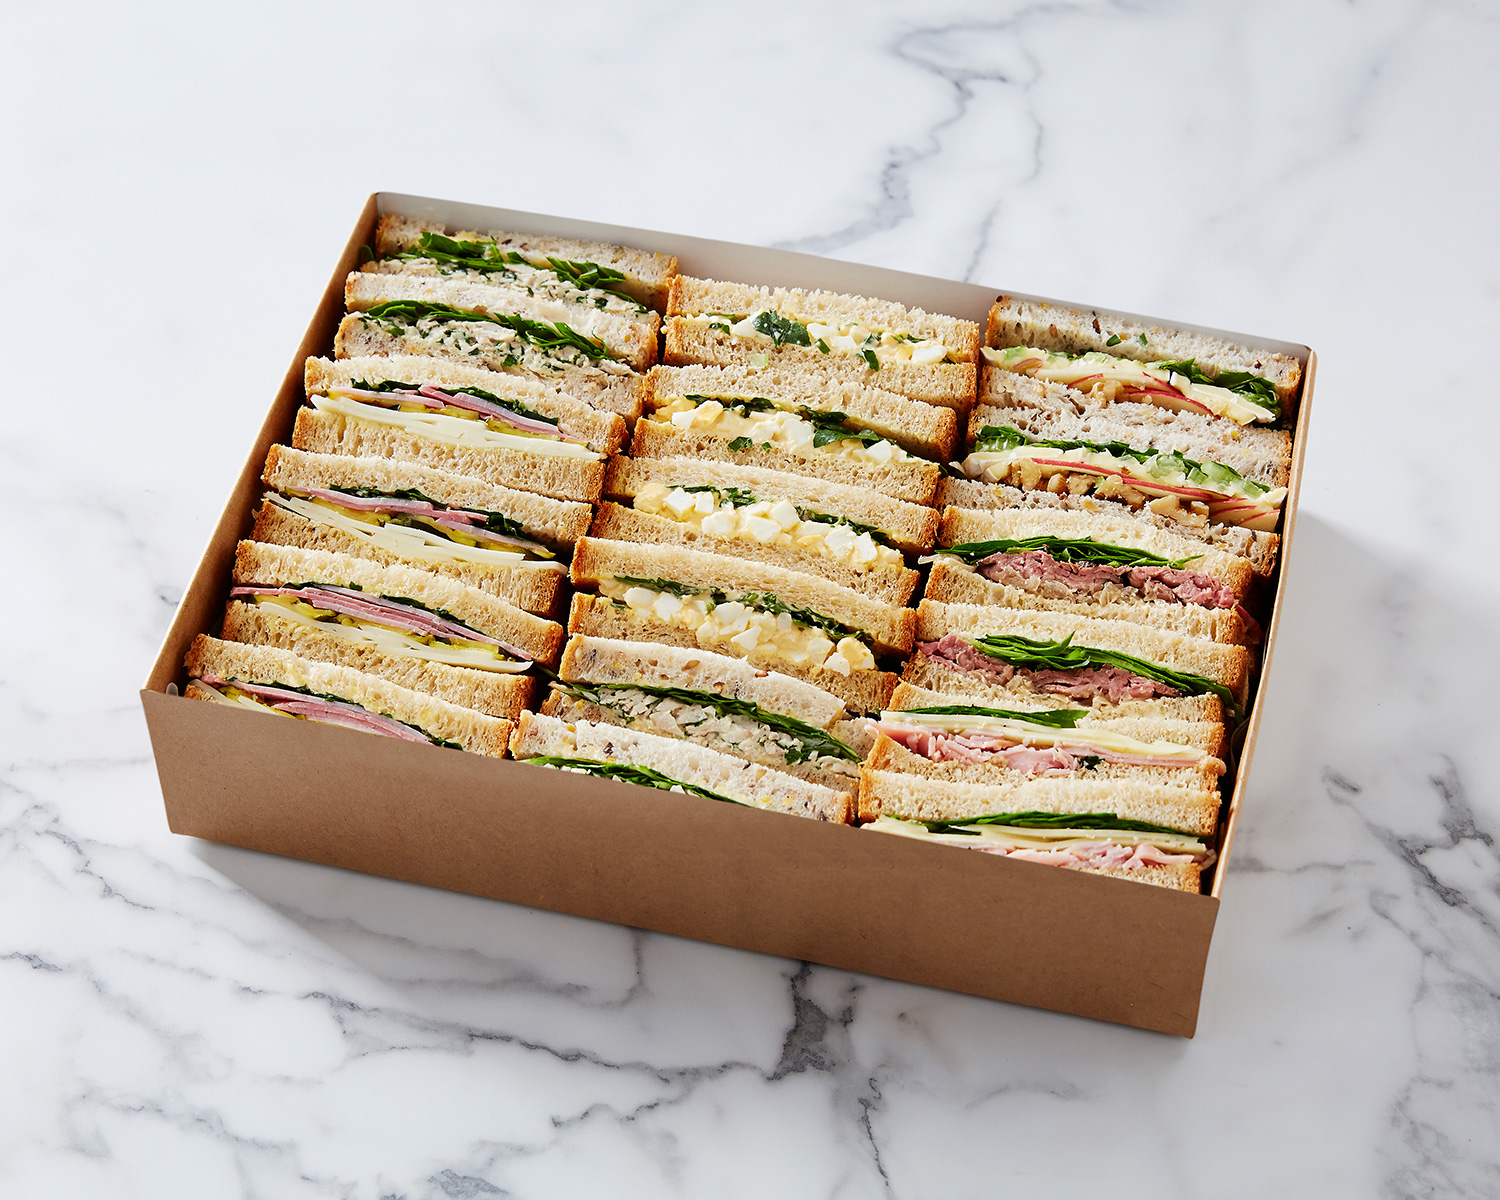 Sandwich platter sliced bread only earl canteen breads altavistaventures Image collections